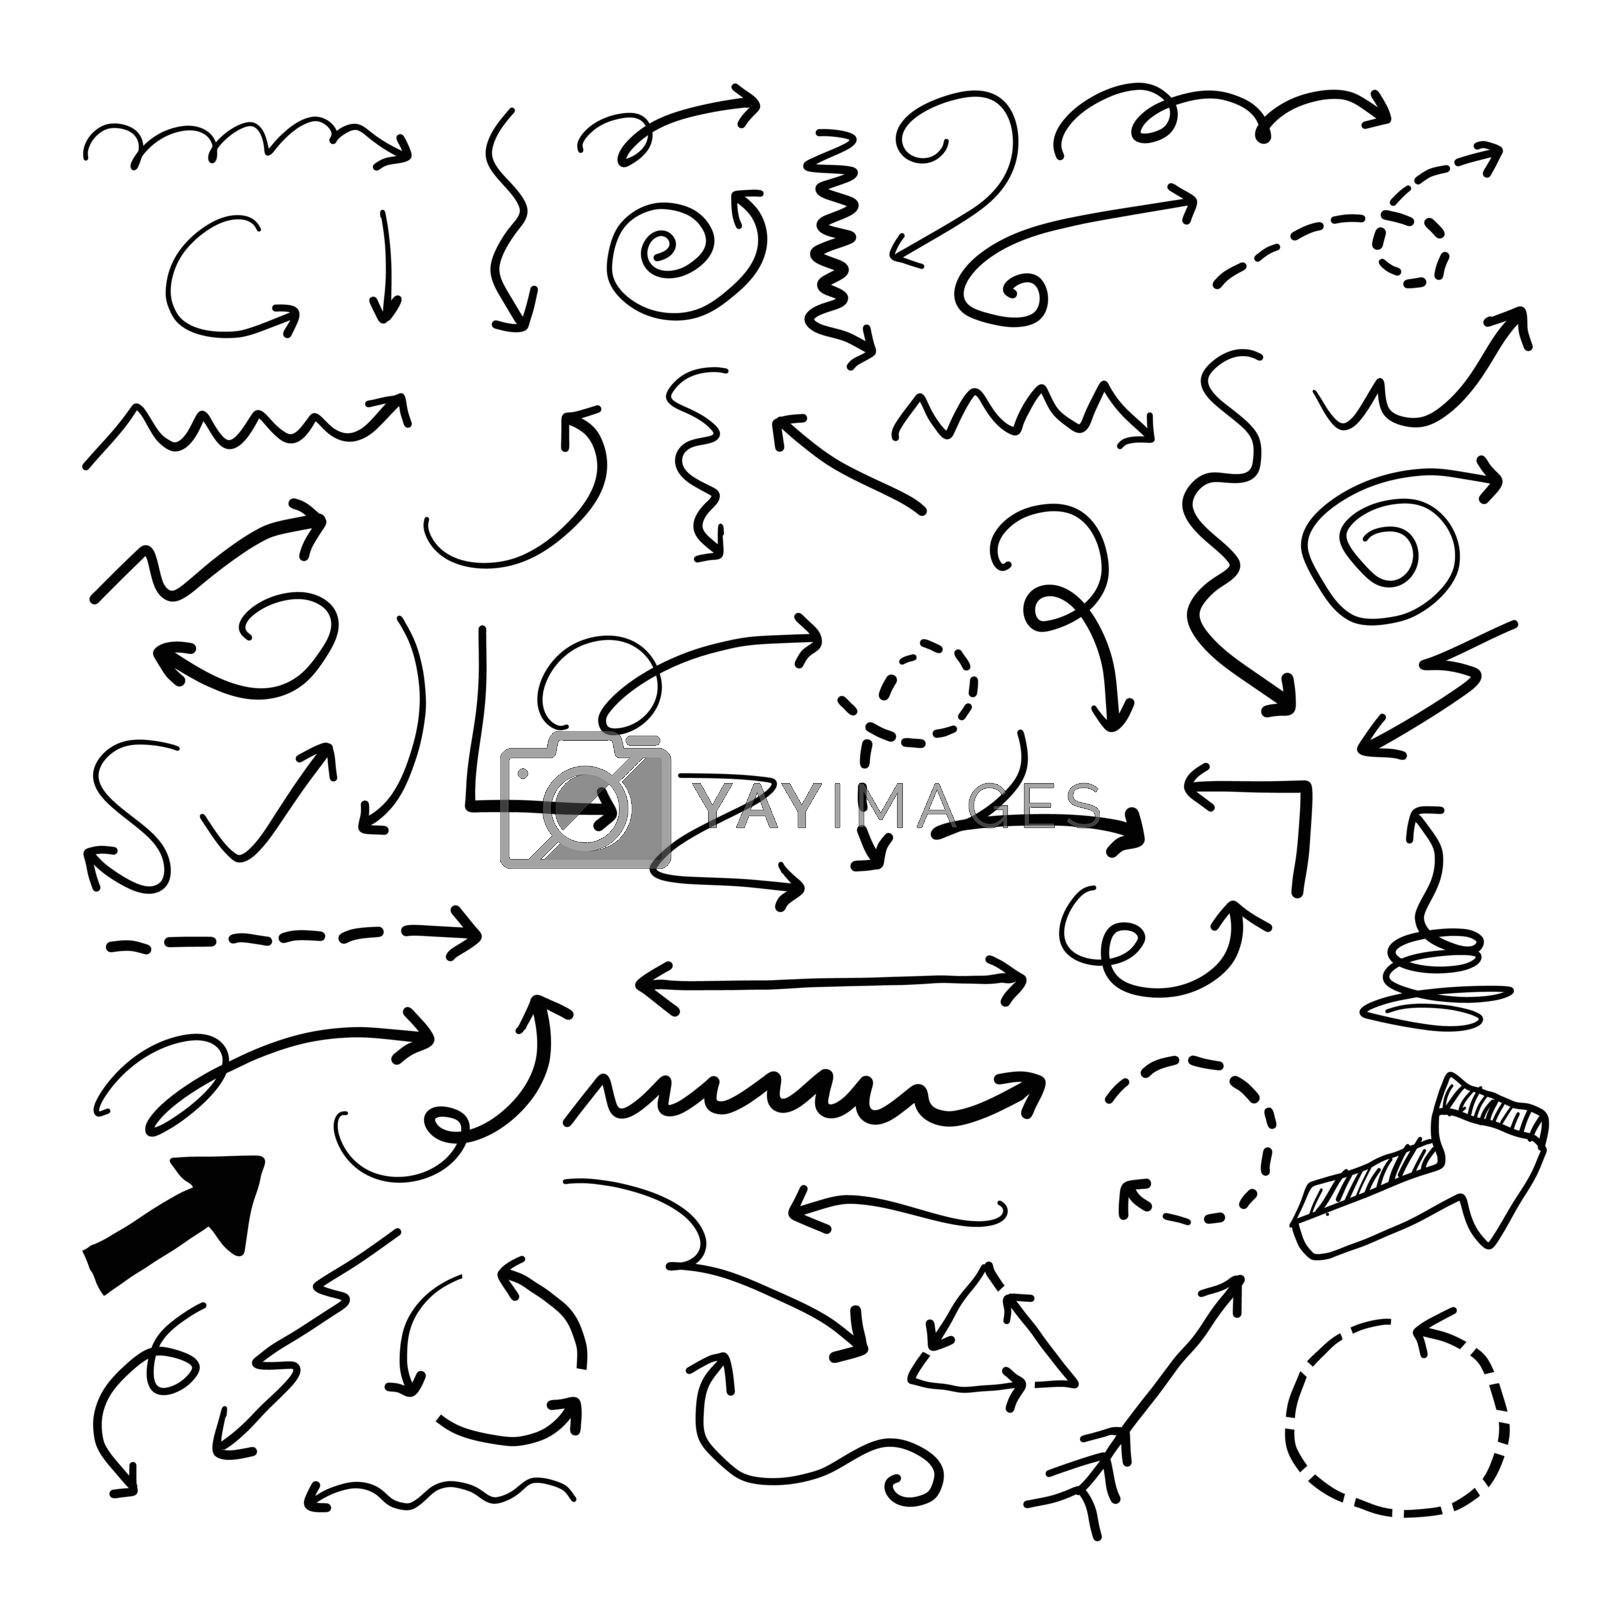 Royalty free image of Vector Arrow Doodle Collection by keeweeboy